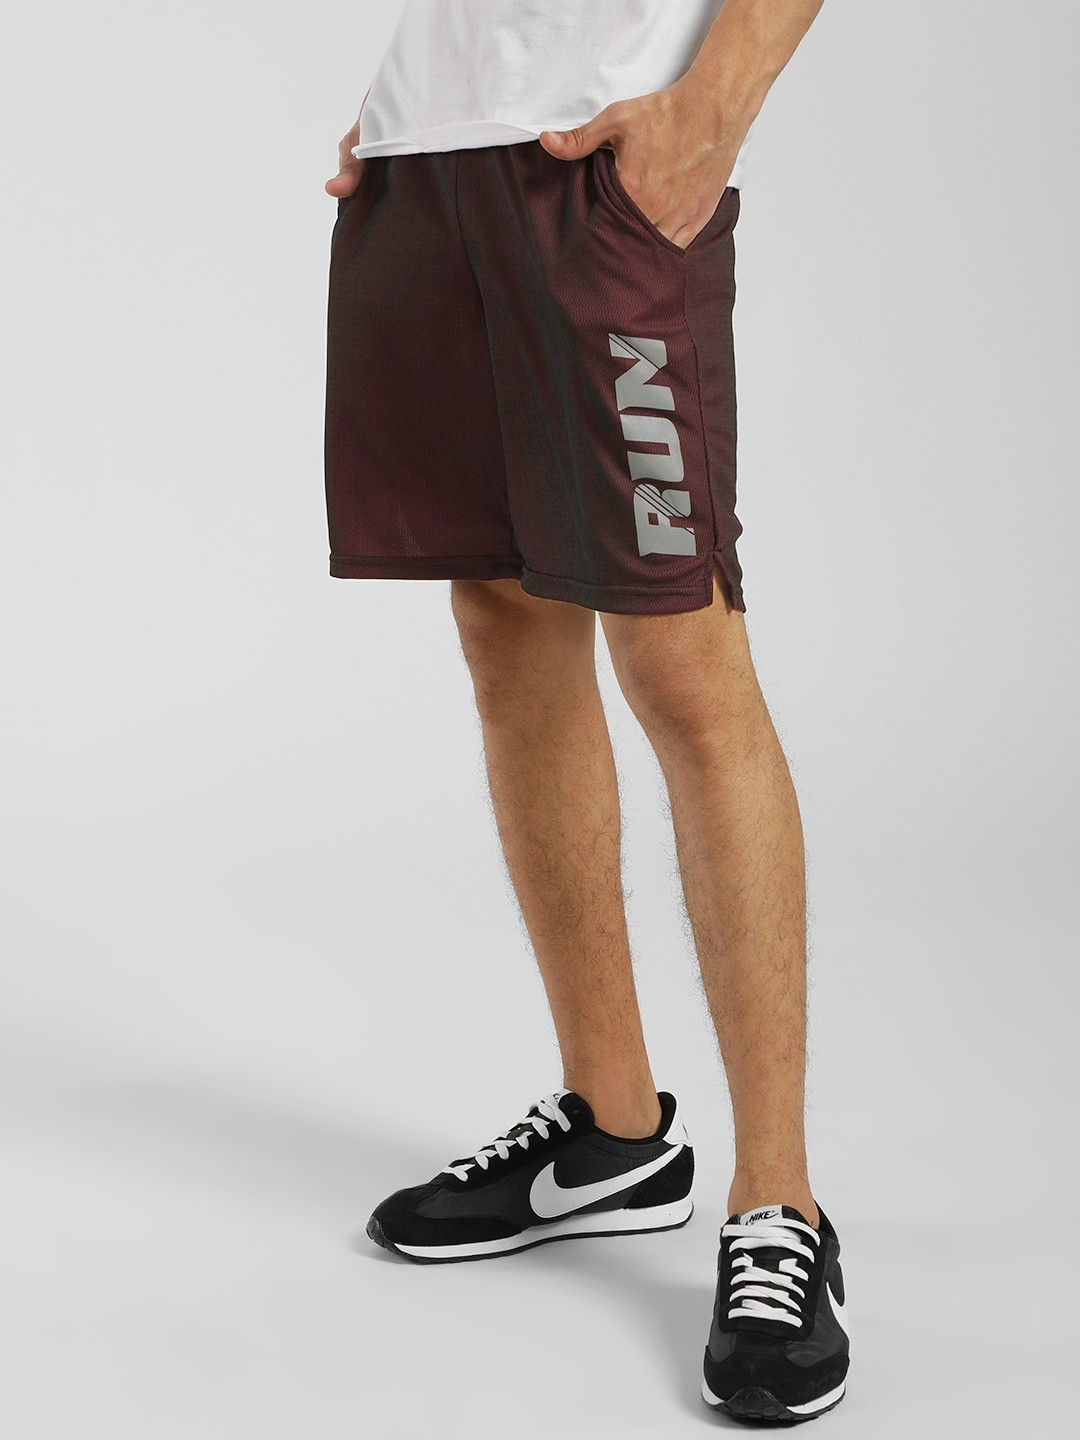 K ACTIVE Maroon KOOVS Reflective Running Shorts 1